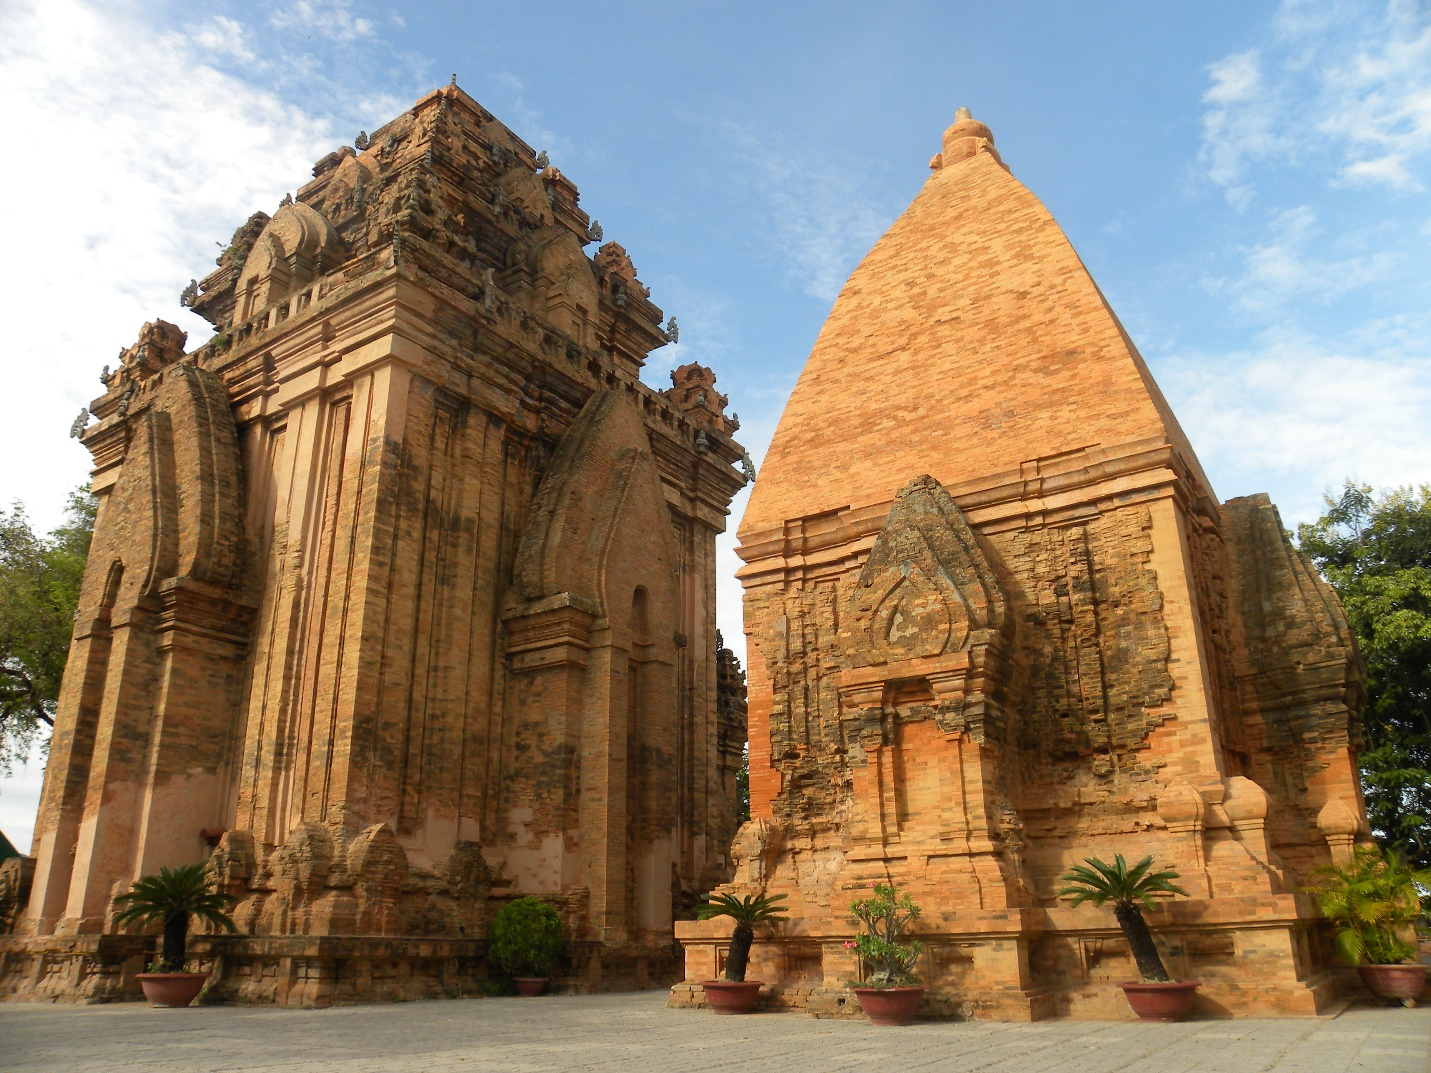 Poshanu Tower is a wonderful destination in Phan Thiet